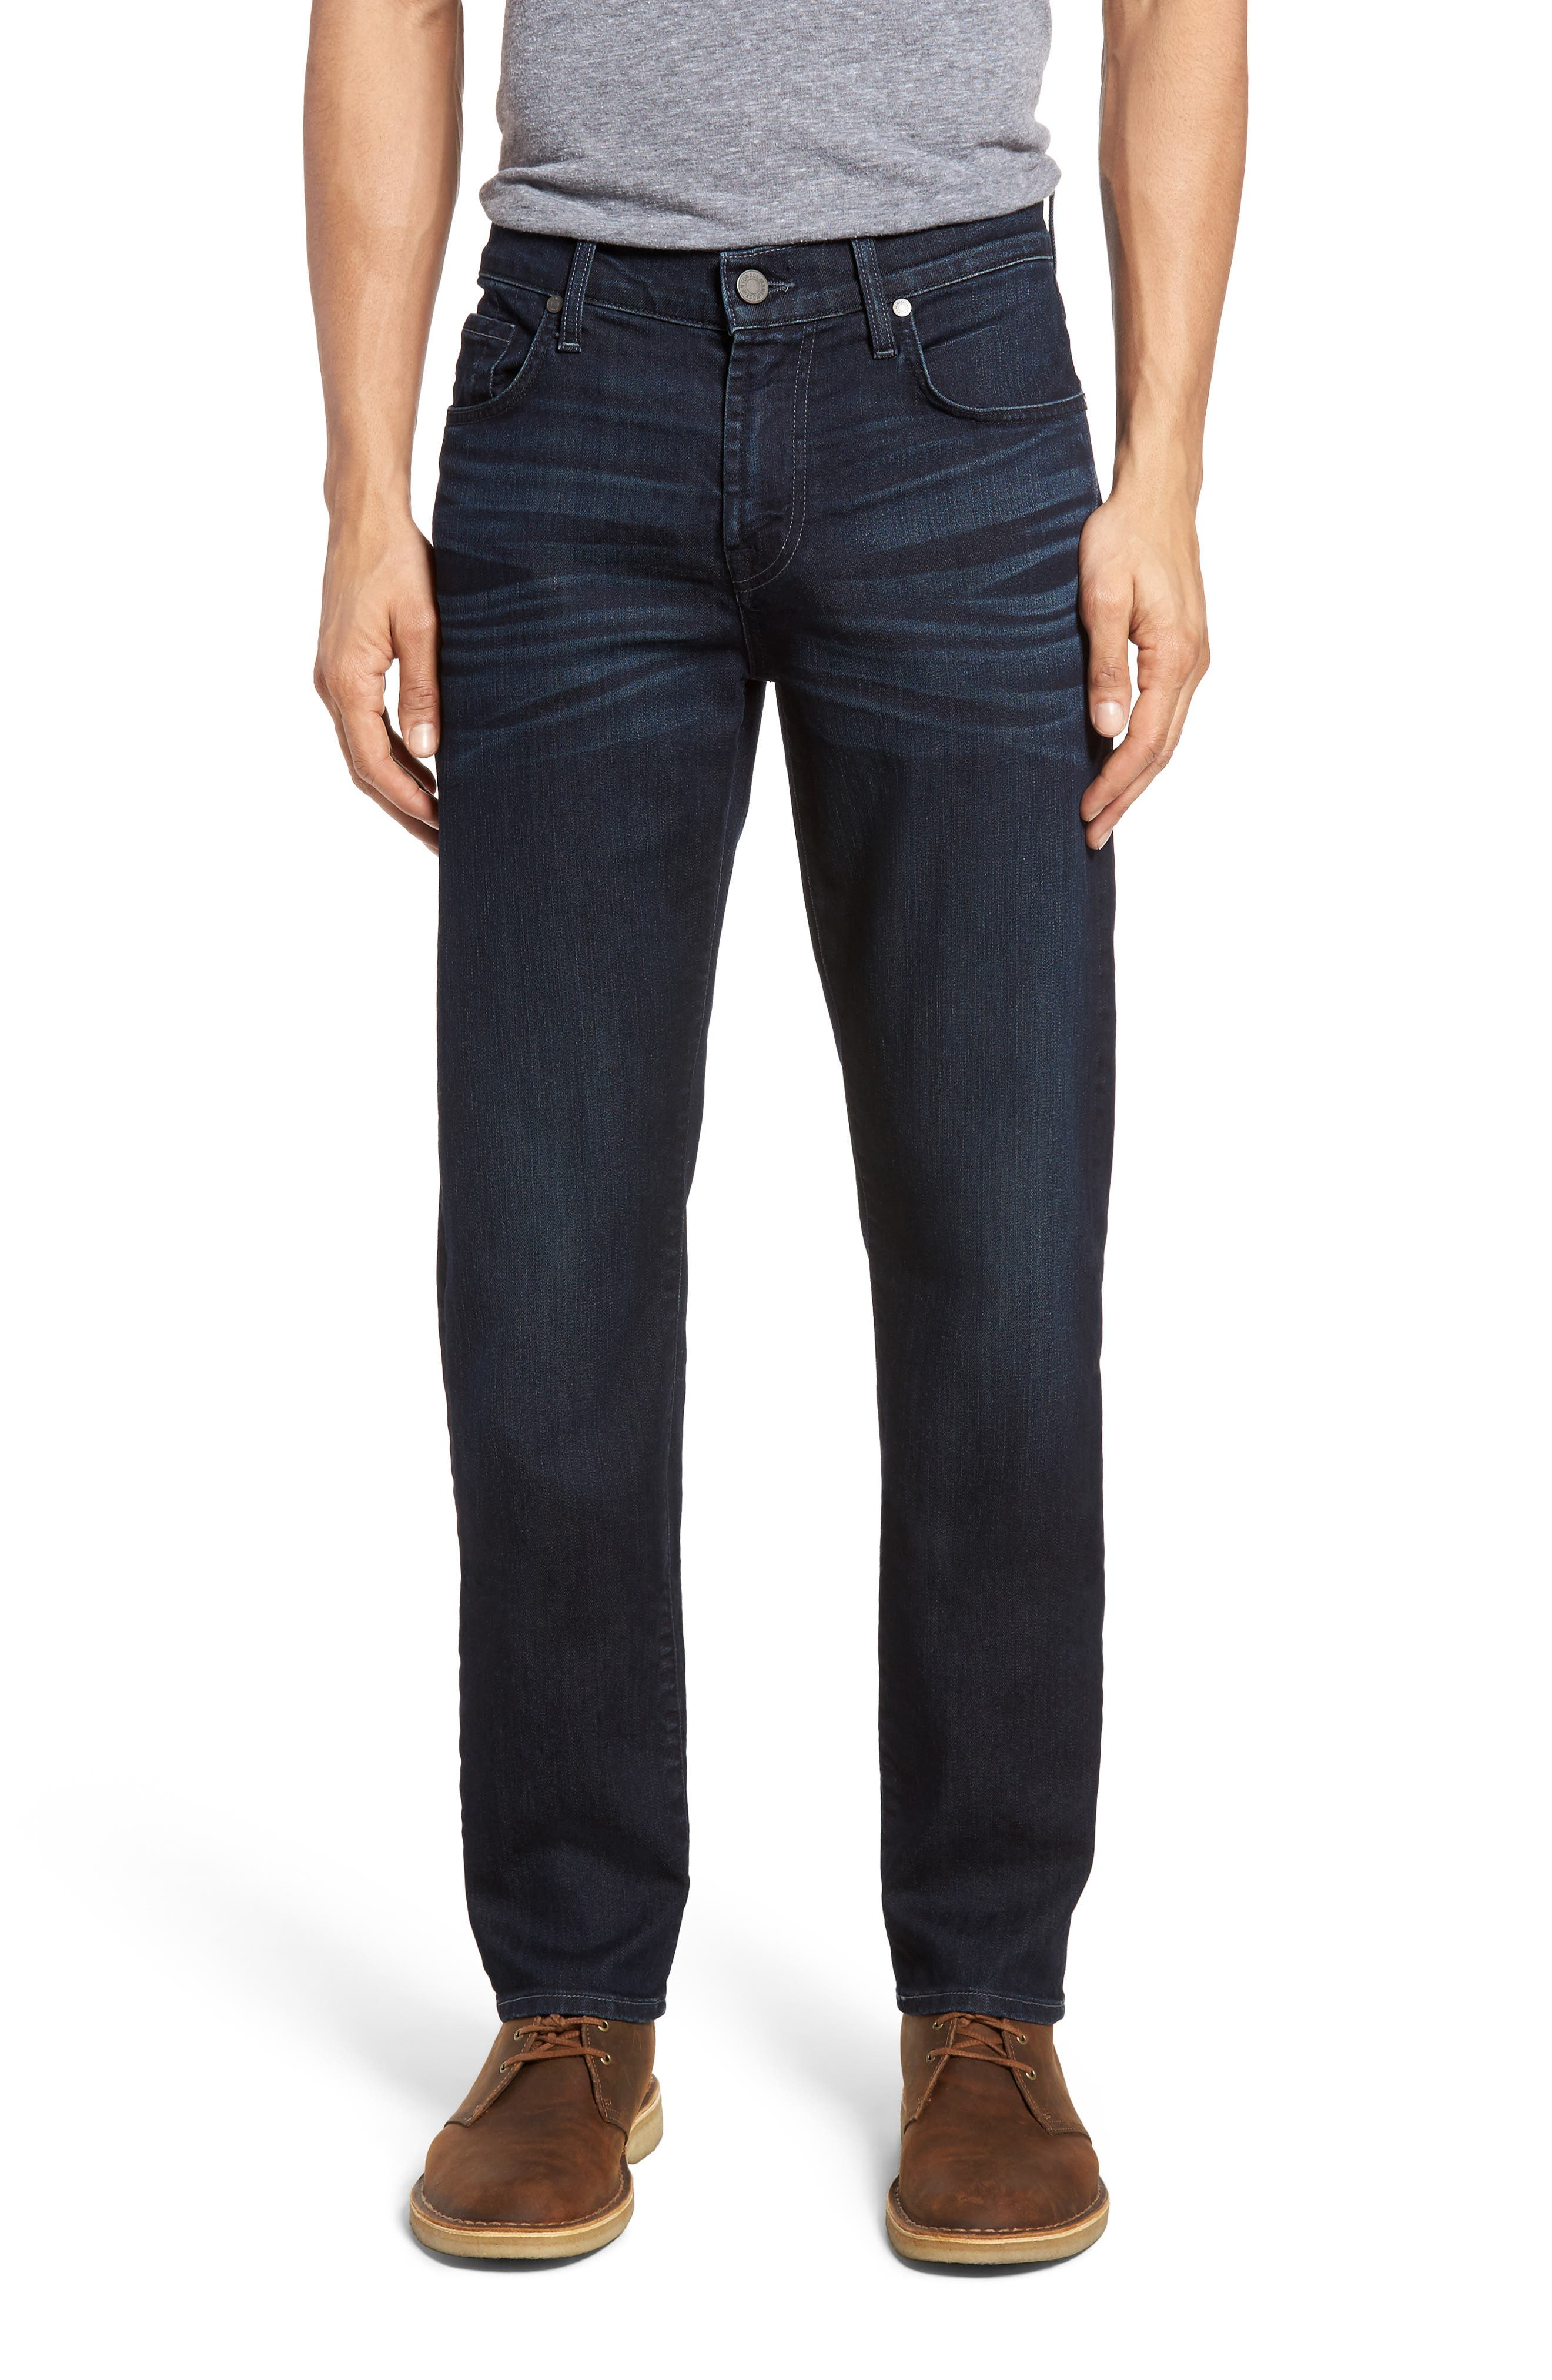 Alternate Image 1 Selected - 7 For All Mankind® Slimmy AirWeft Slim Fit Jeans (Perennial)